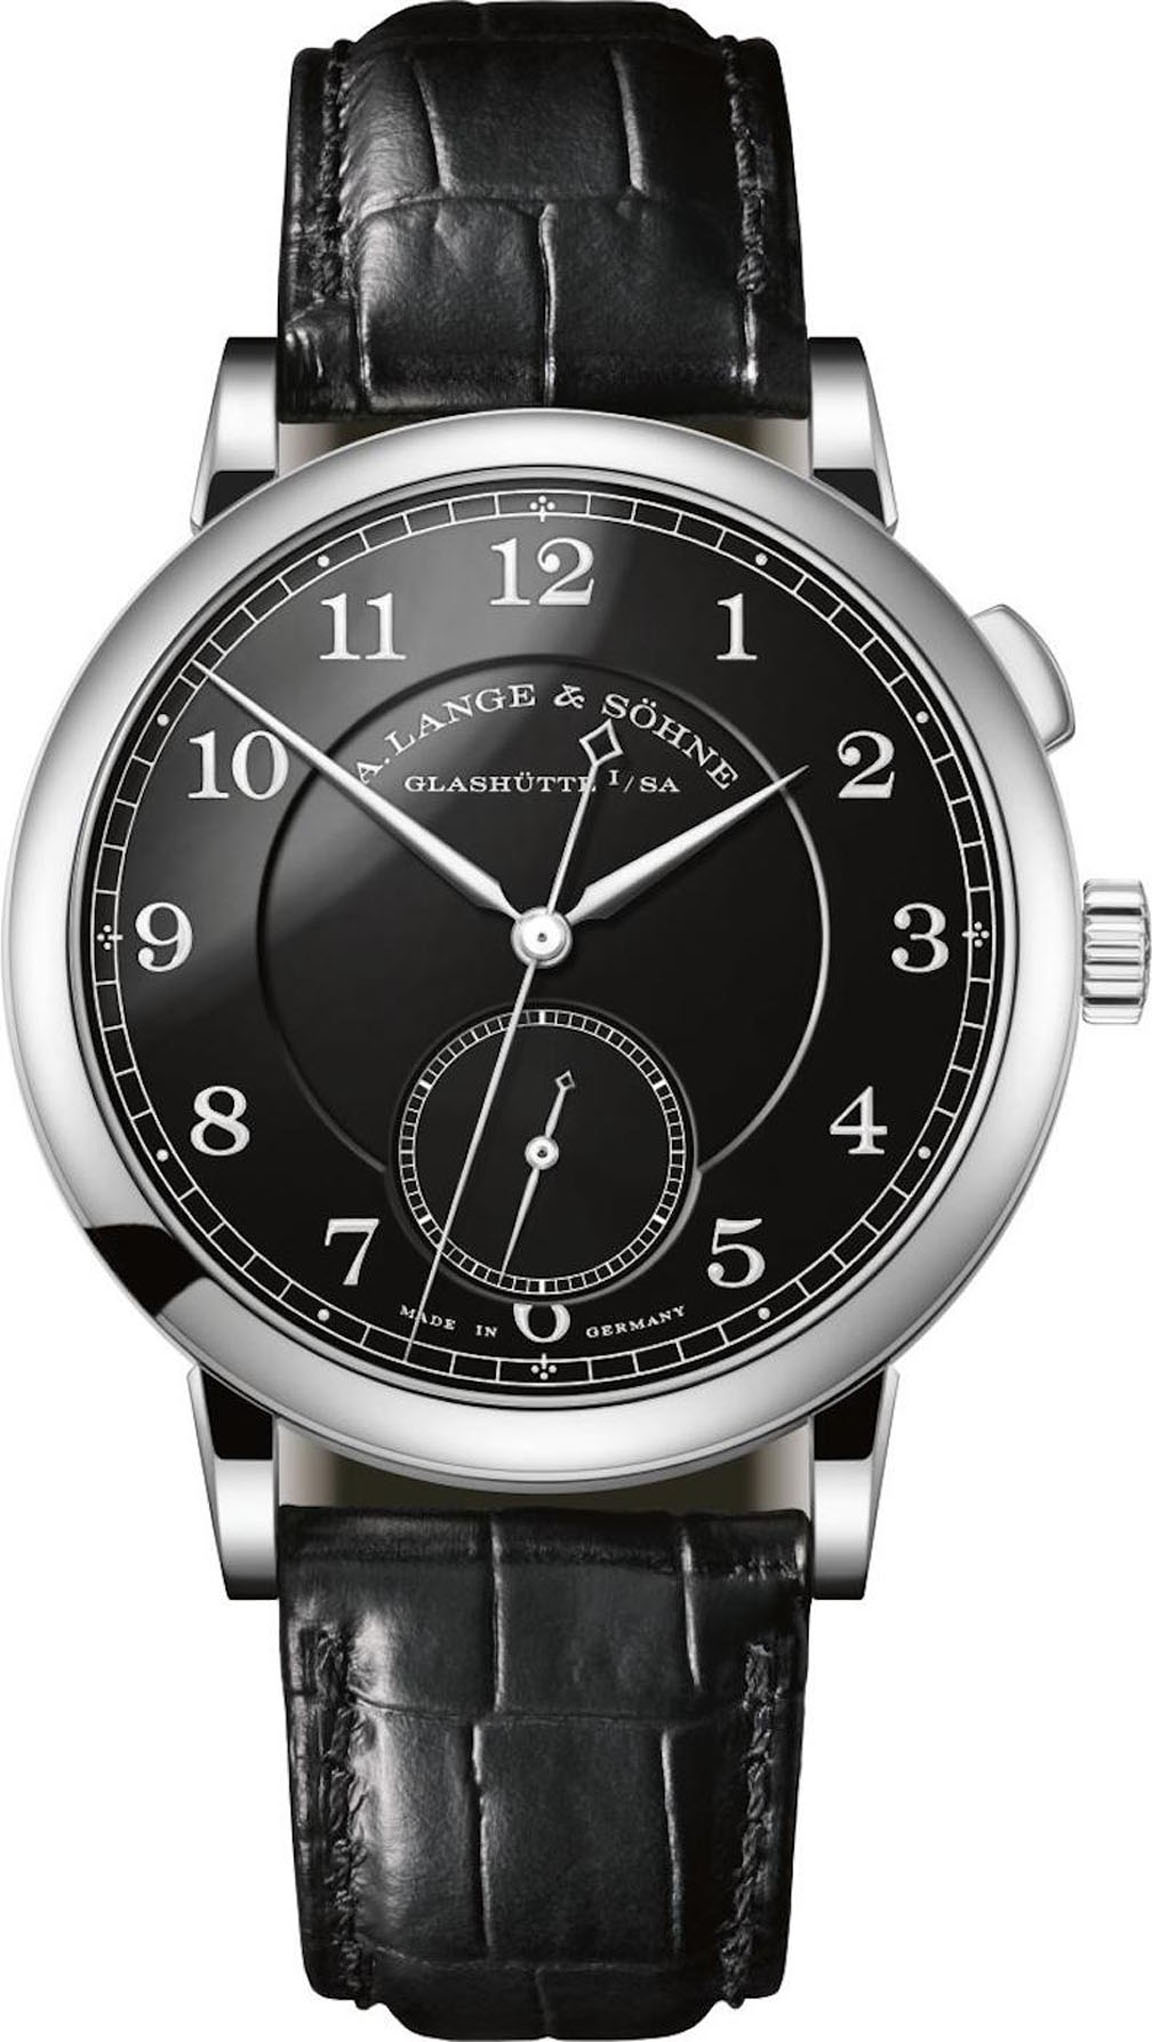 Pre-SIHH 2018: This special edition stainless steel A. Lange & Sohne 1815 Homage to Walter Lange watch with black enamel dial is a one-of-a-kind that will be auctioned next year for charity.